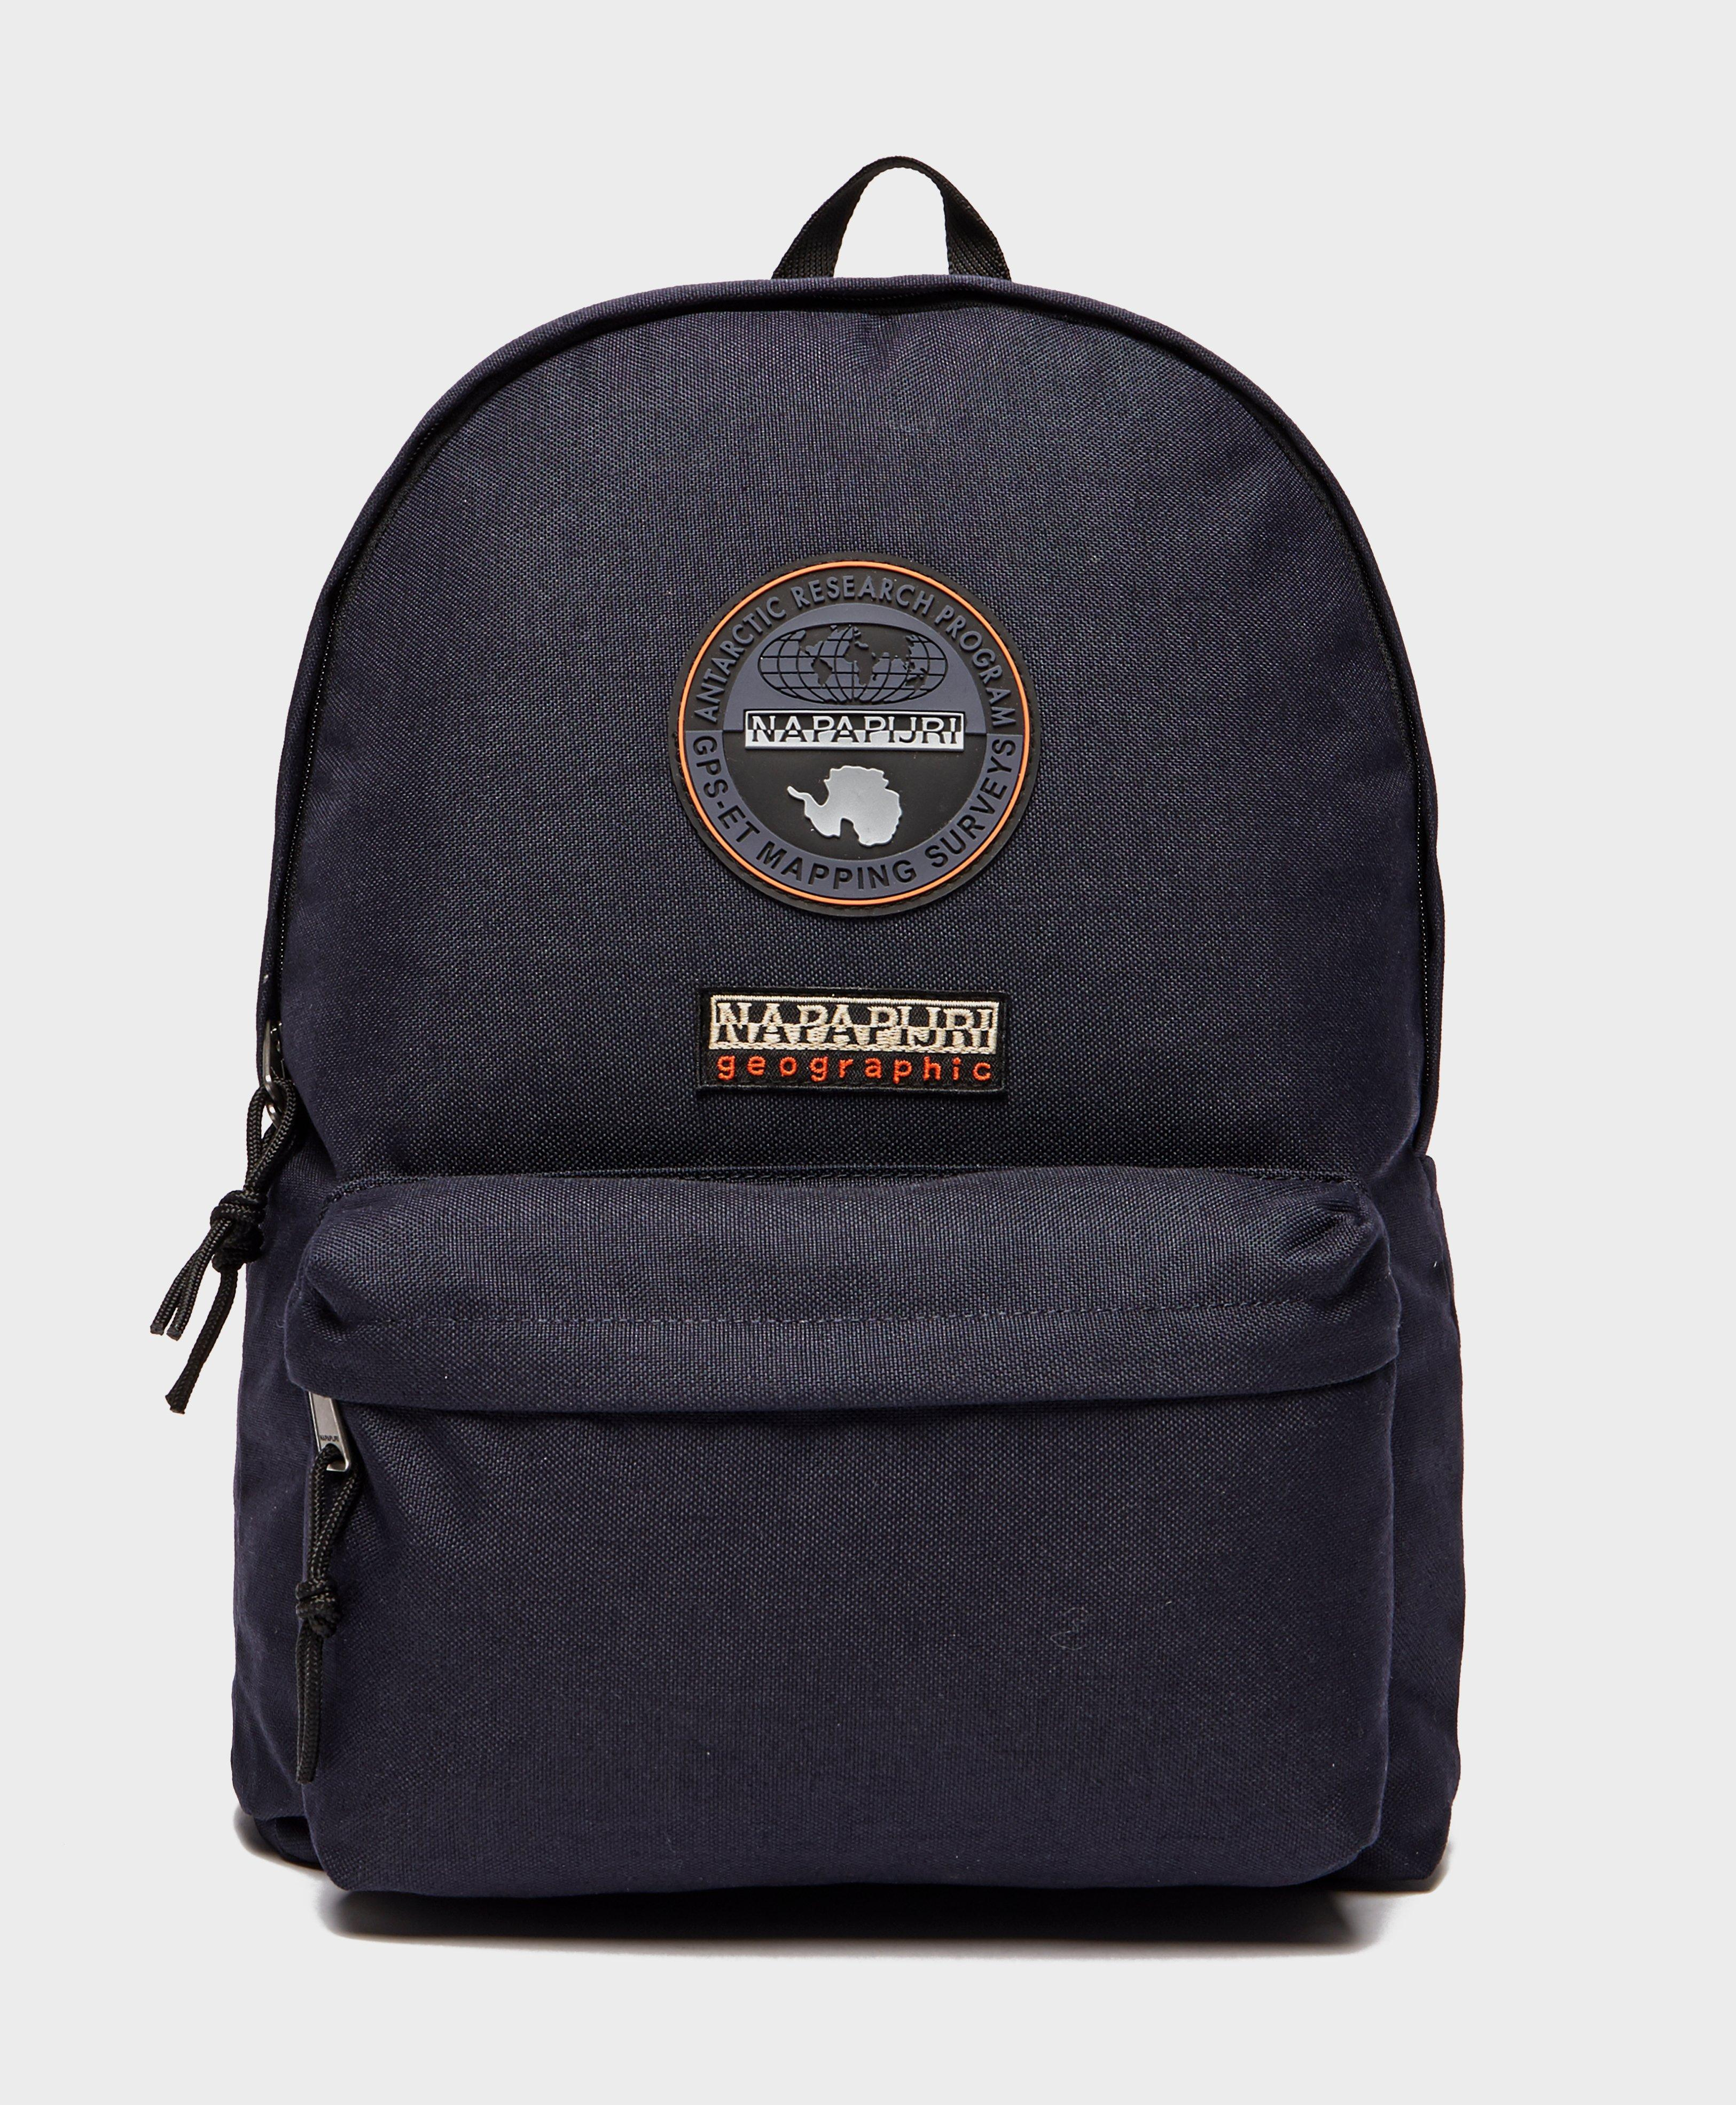 Napapijri - Blue Voyage Backpack for Men - Lyst. View fullscreen